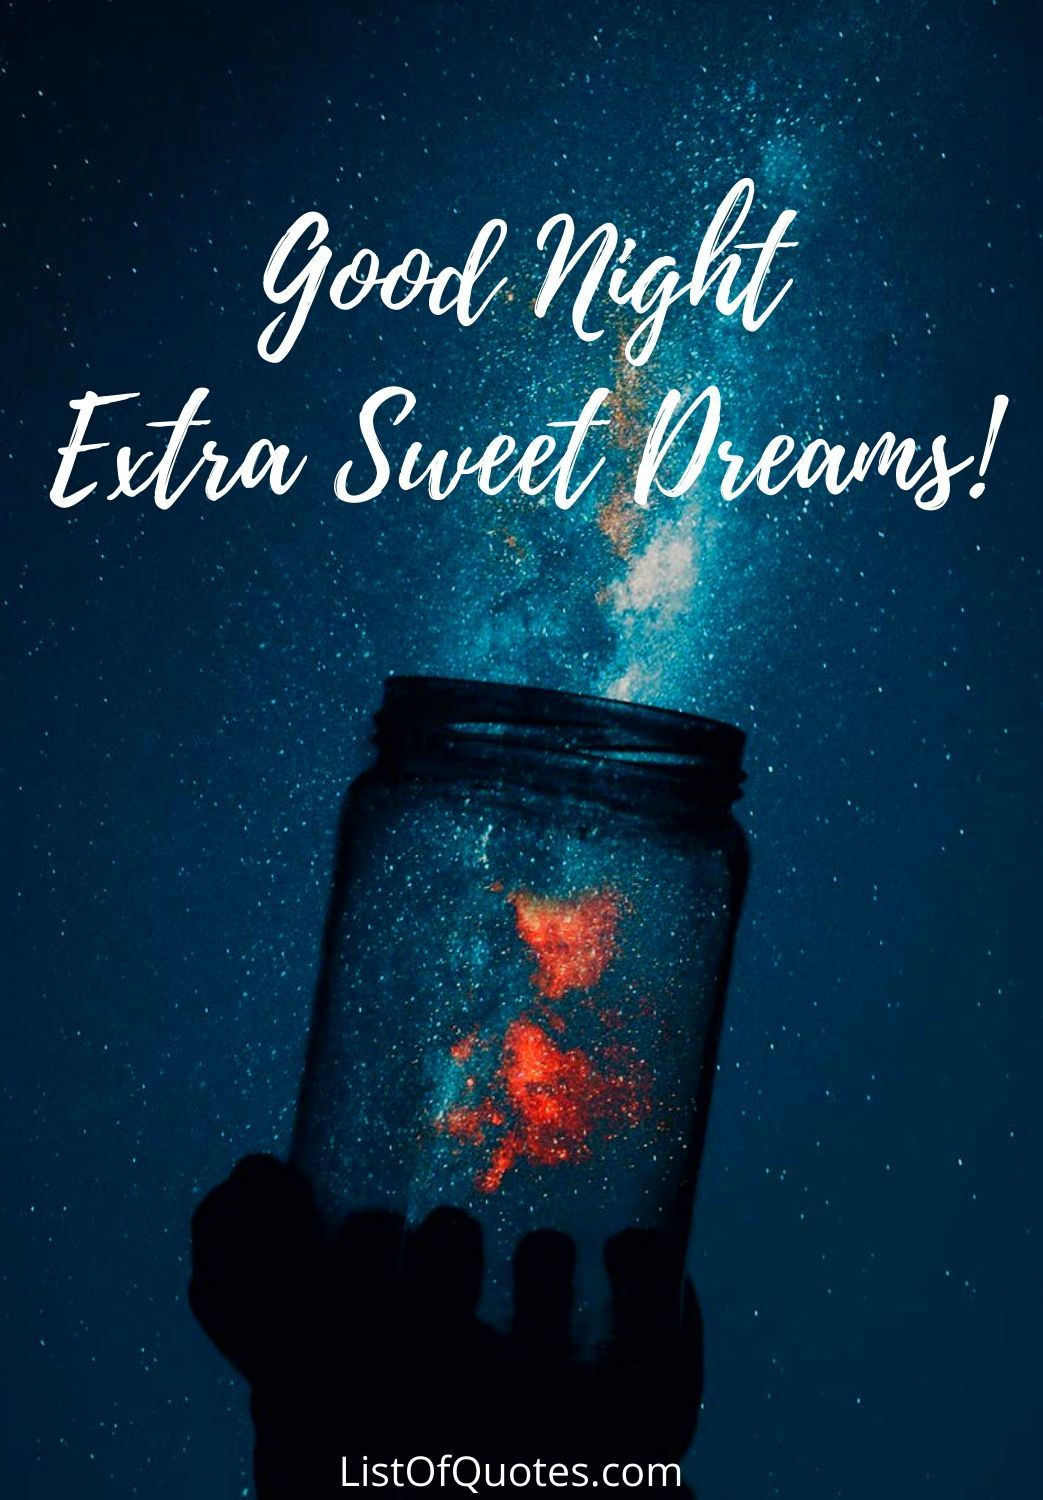 Sweet Dreams Good Night Quotes Messages Wishes For Friends Free Download In 2020 Sweet Good Night Messages Good Night Love Messages Good Night Quotes